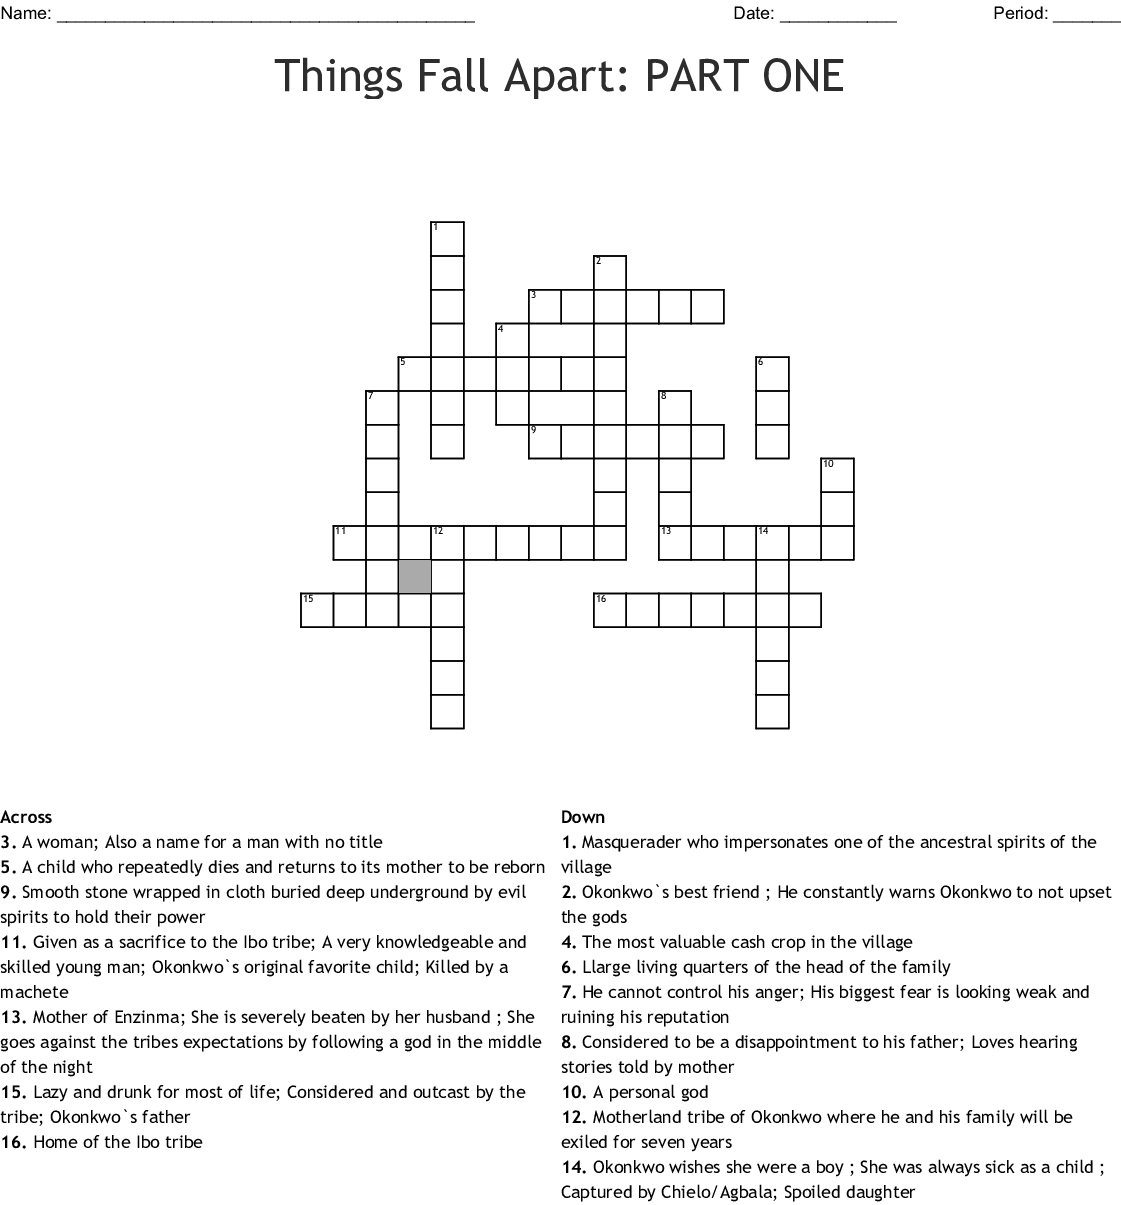 Things Fall Apart Part One Crossword